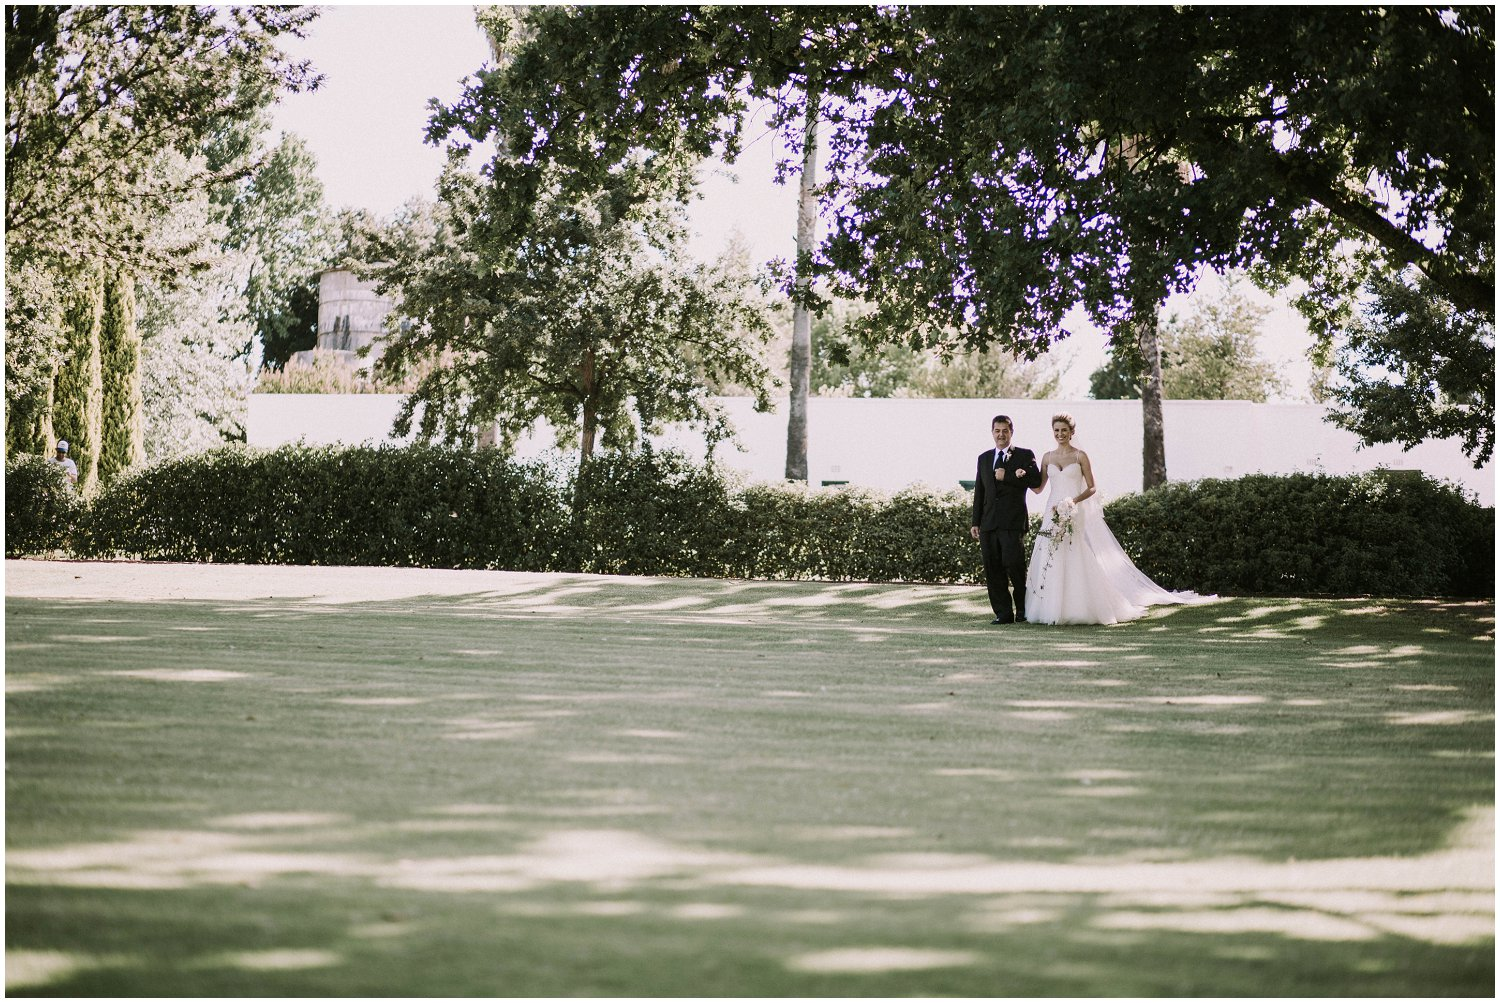 Top Artistic Documentary Wedding Photographer Cape Town South Africa Rue Kruger_0095.jpg